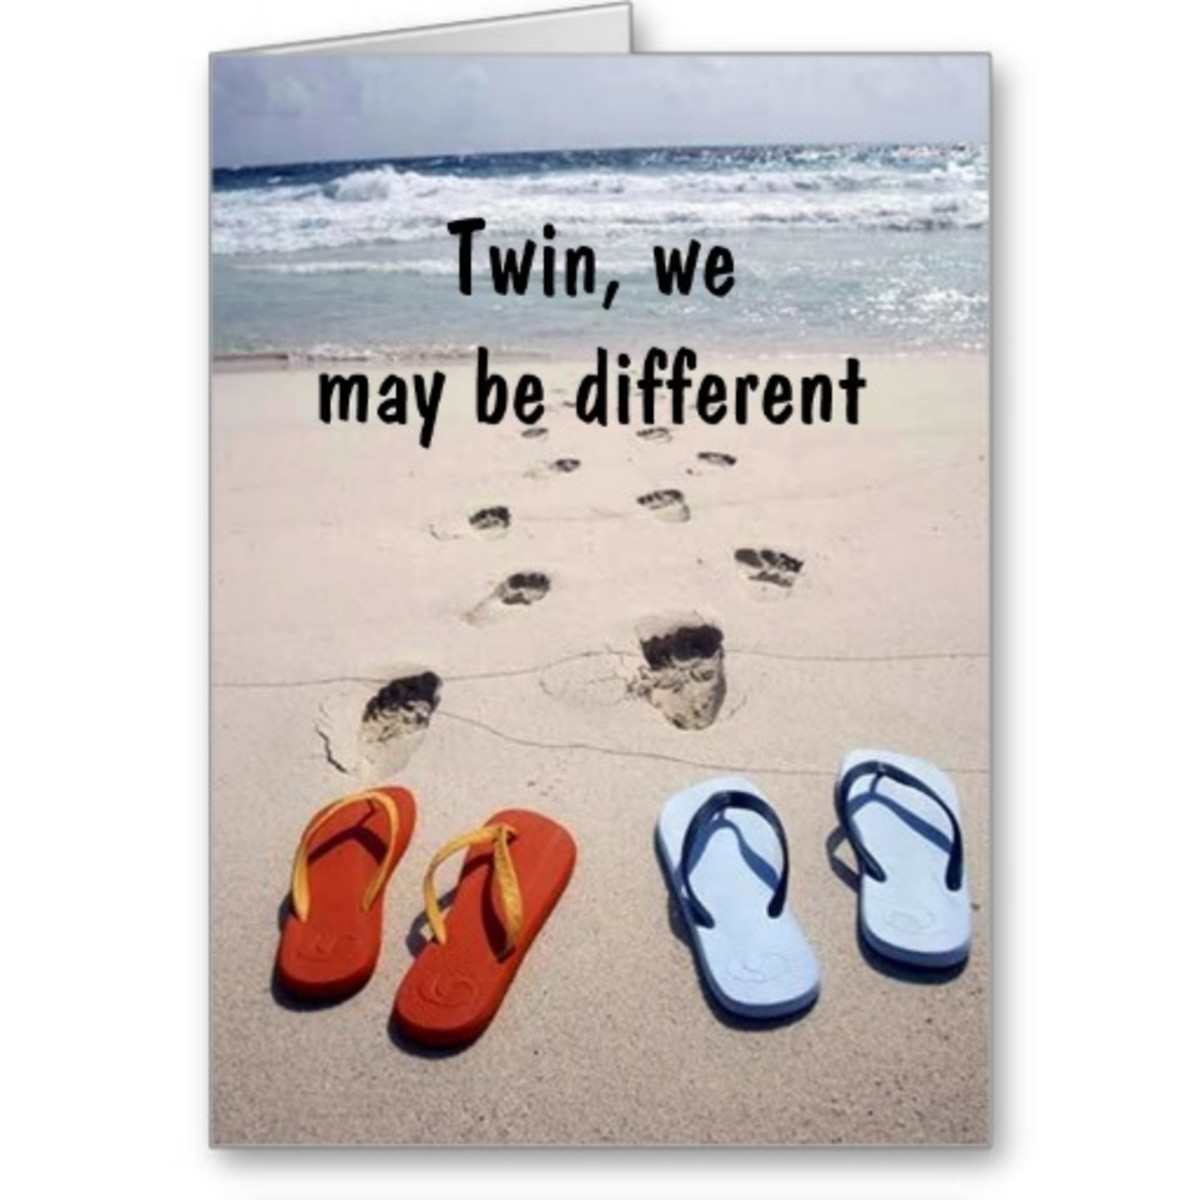 Birthday To A Sister Is One For Your Own Twin Below Find Some Great Cards With Quotes On Them Her And Special Day